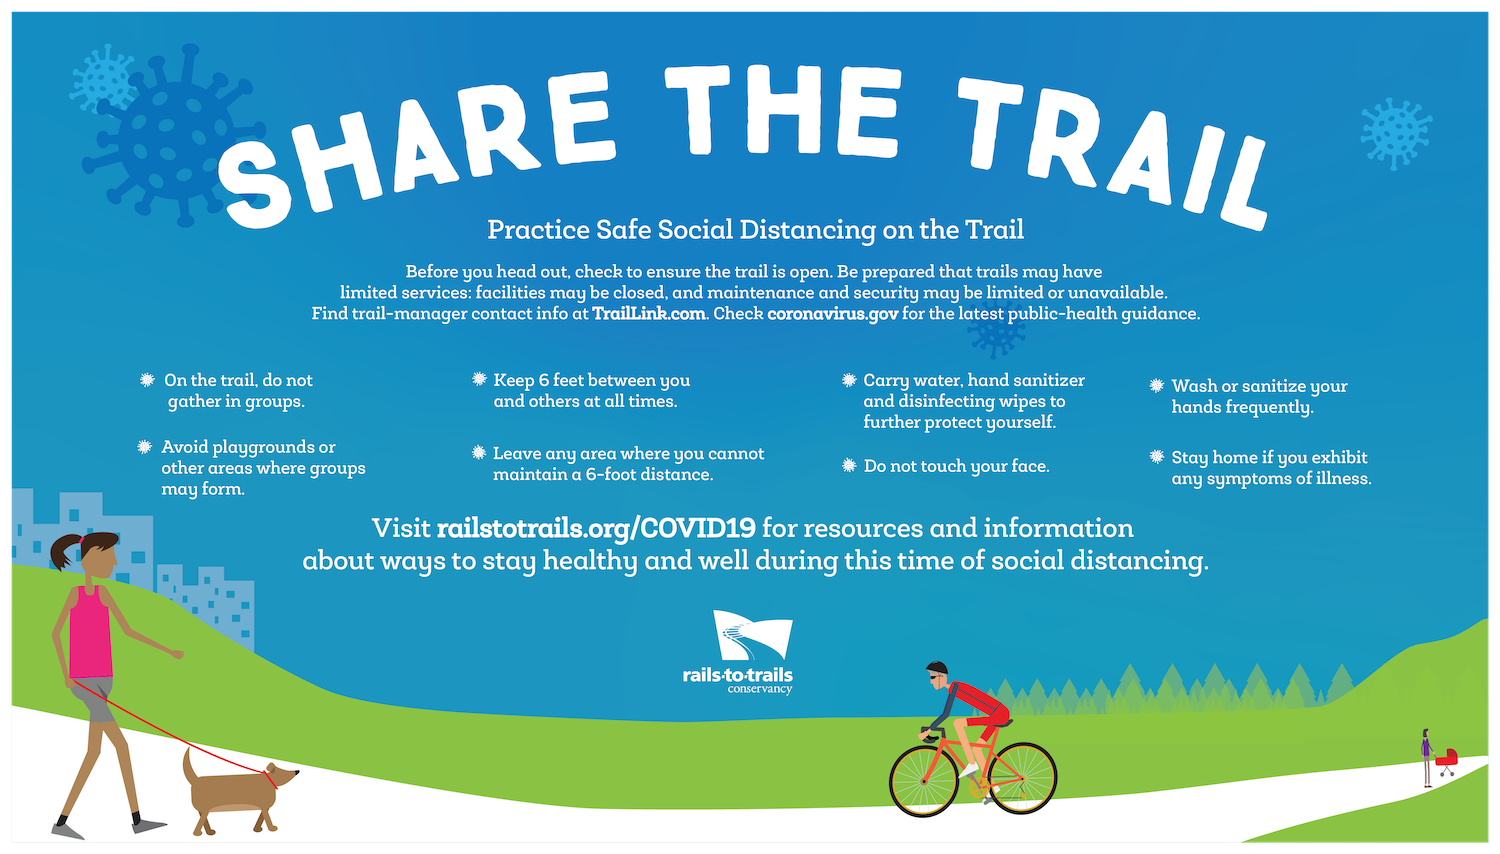 "Share the Trail ""Practice Safe Social Distancing on the Trail"" banner in English"